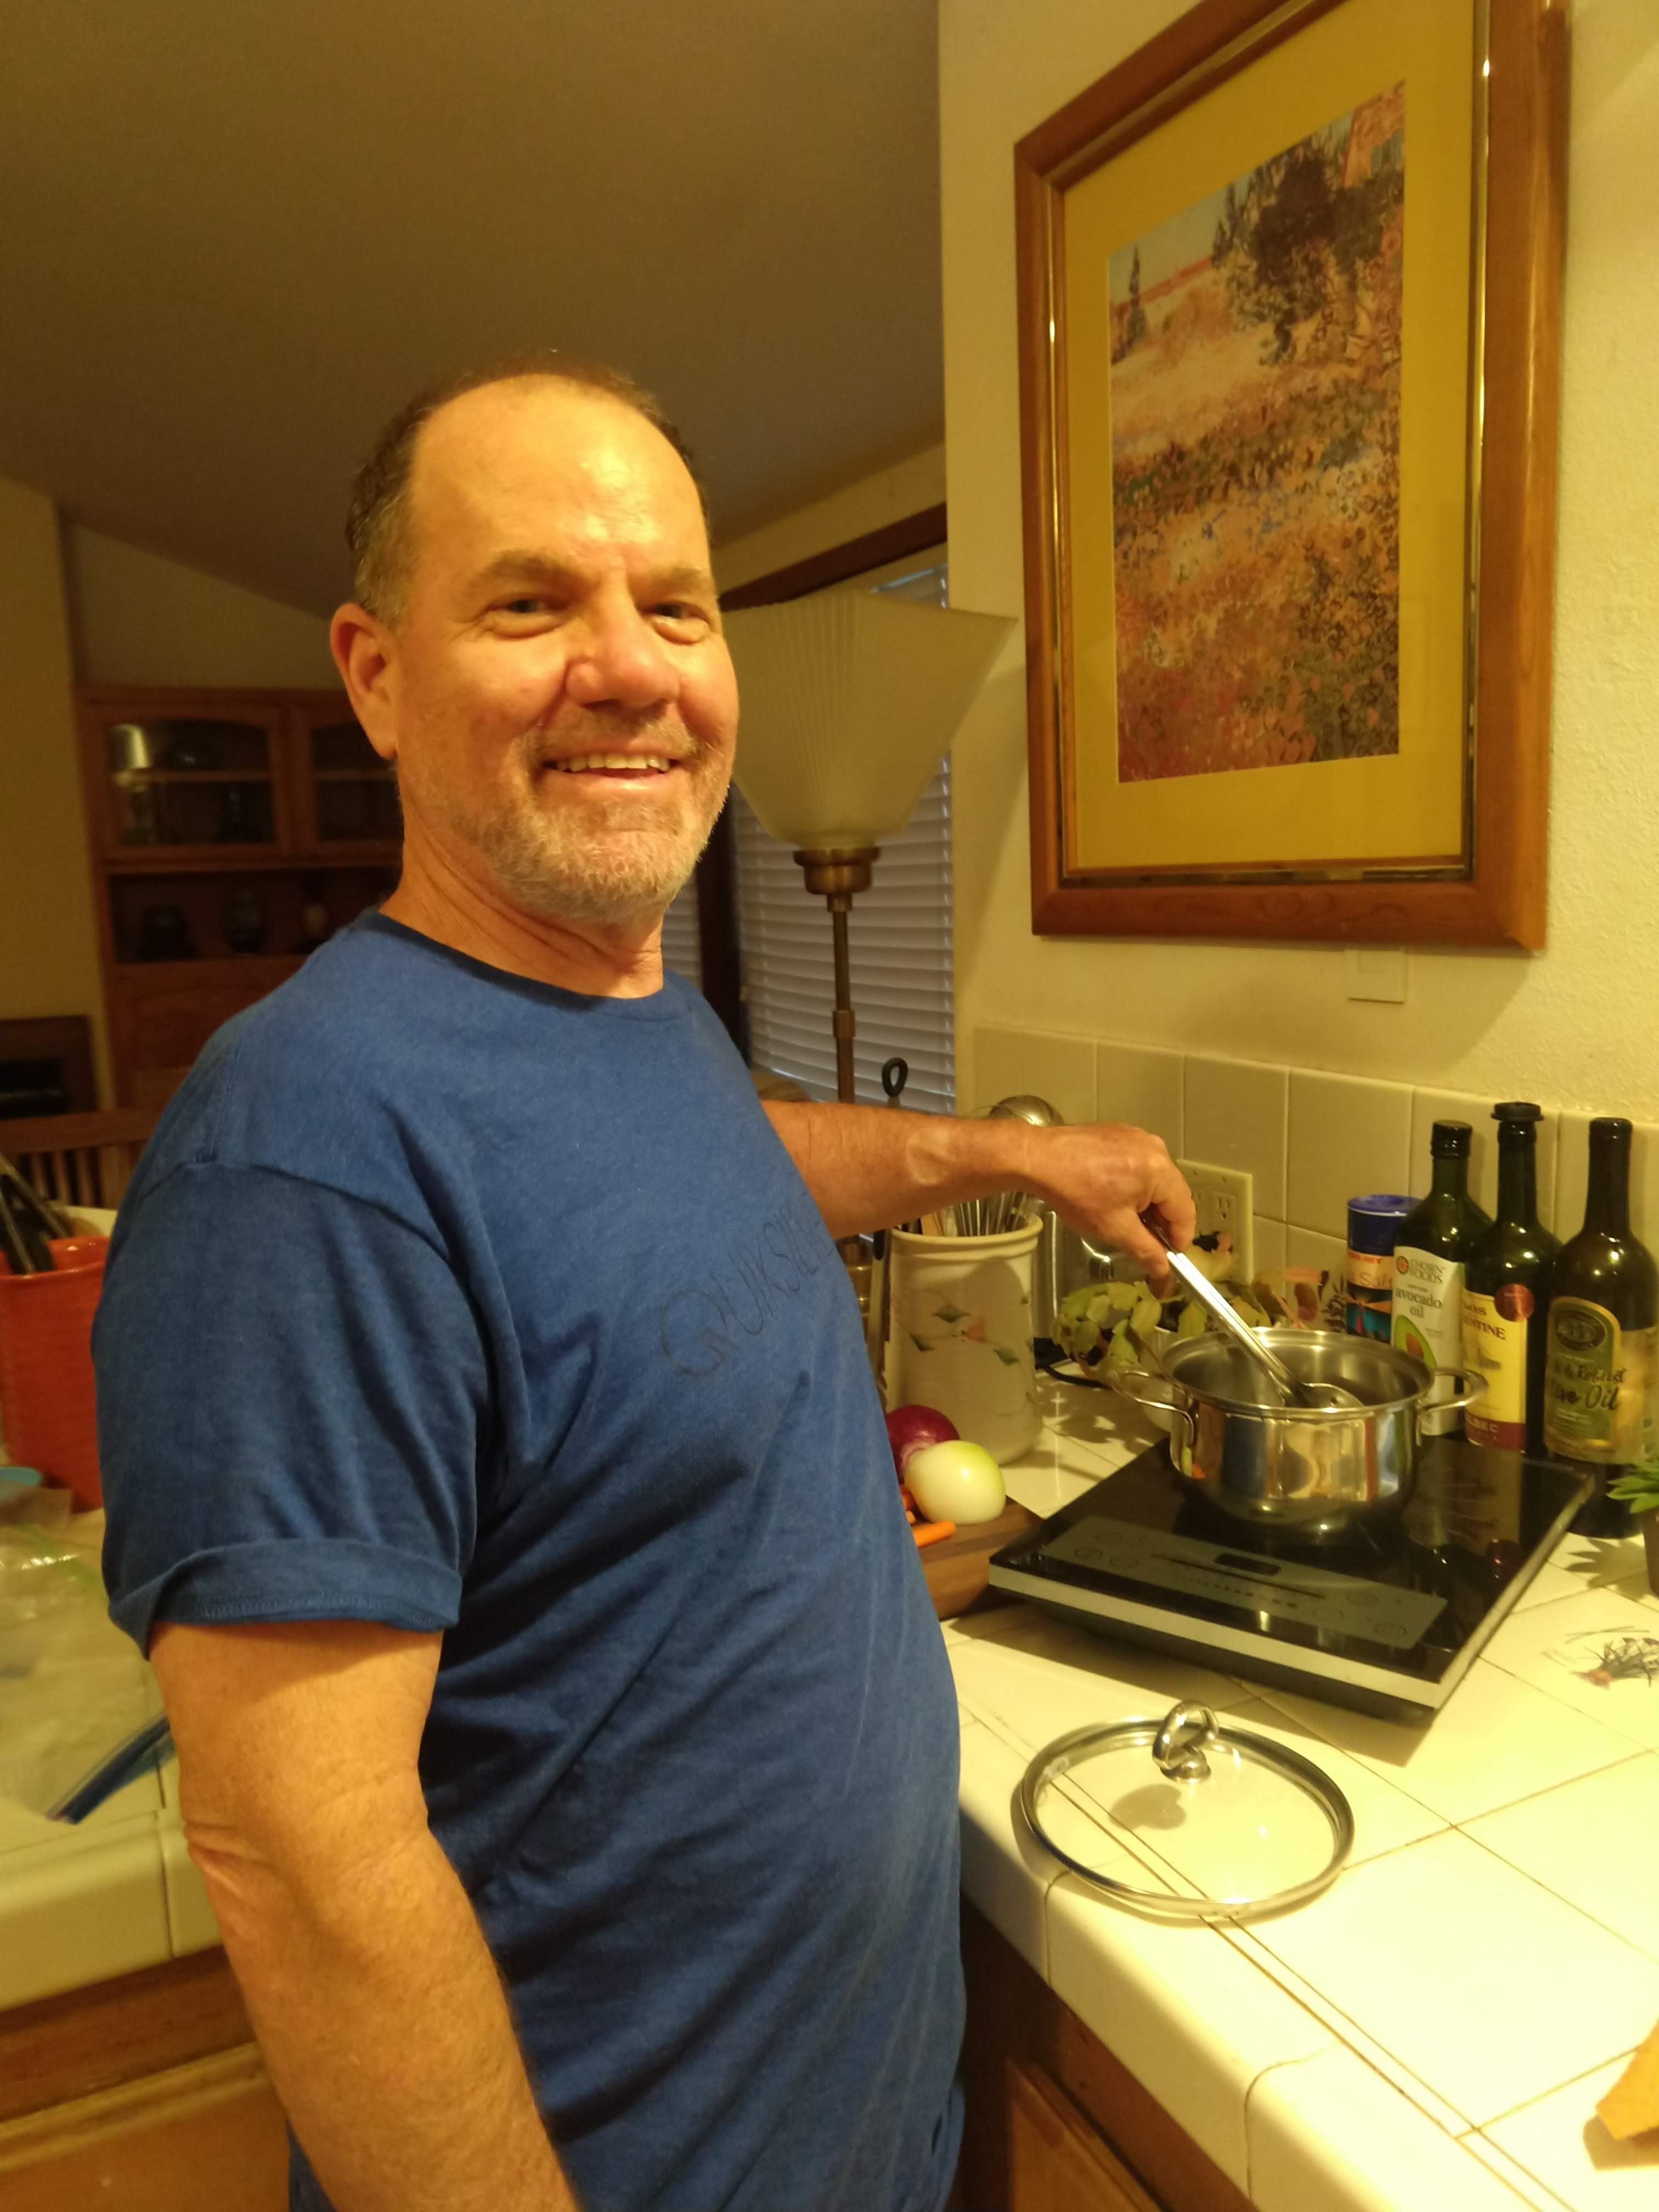 Man in front of Induction Stove